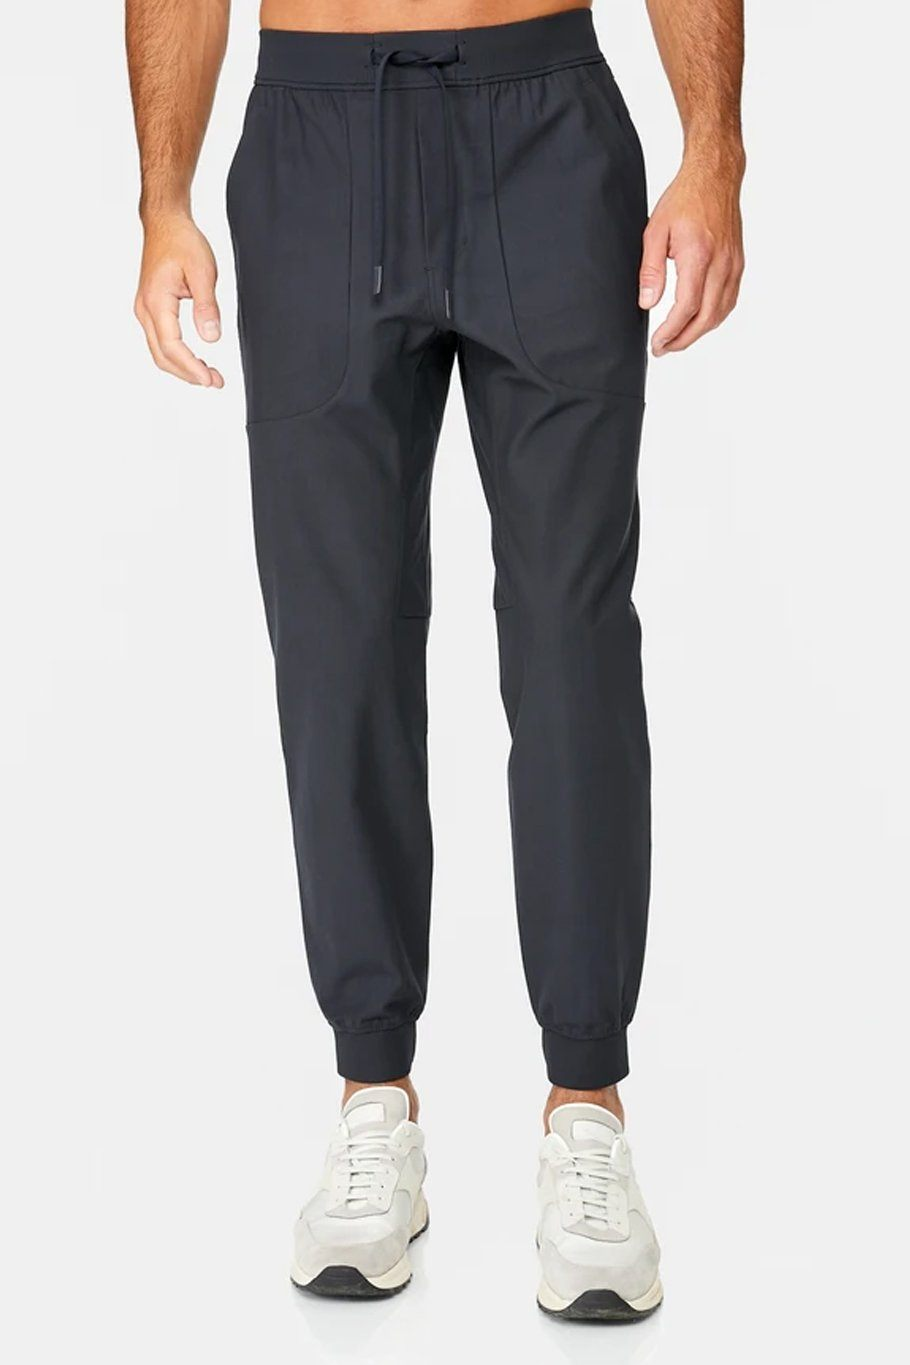 The Infinity Jogger - Charcoal - Shore